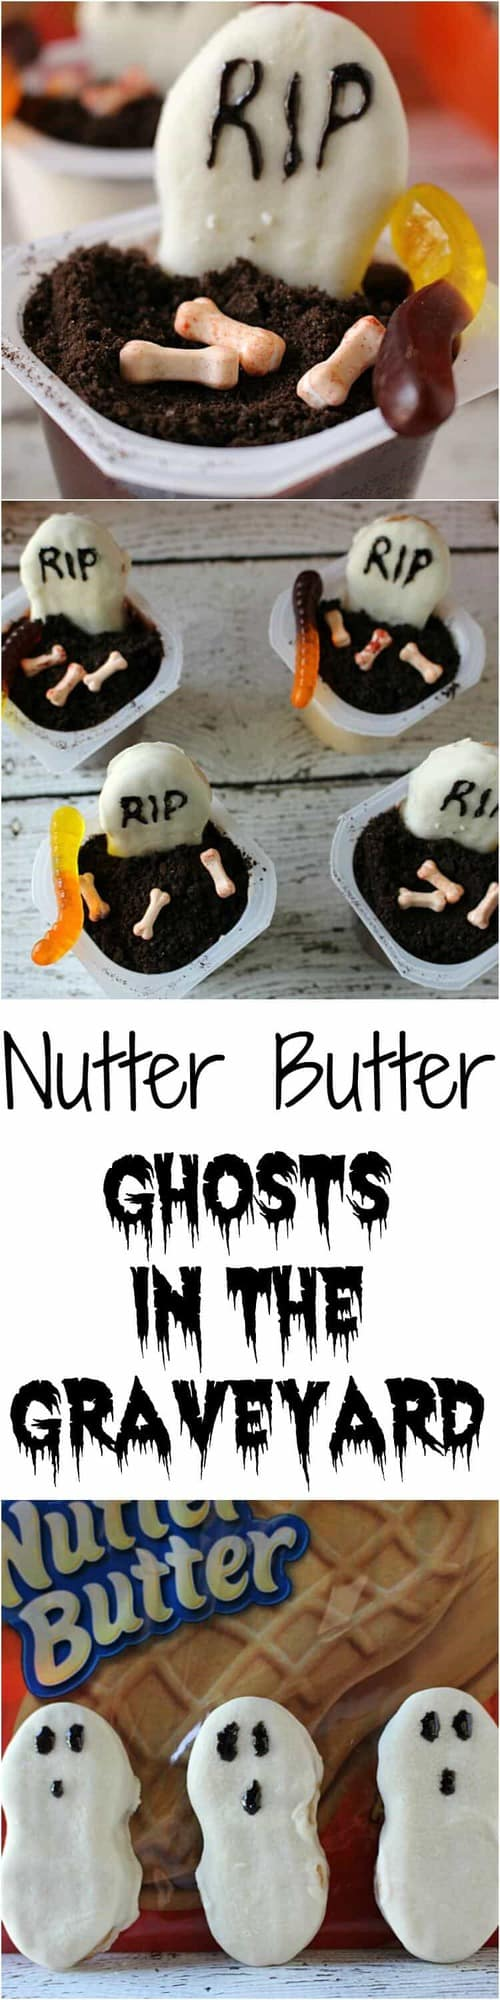 Nutter butter pudding cups Ghosts in the Graveyard - a delicious Halloween treat for your classroom parties!